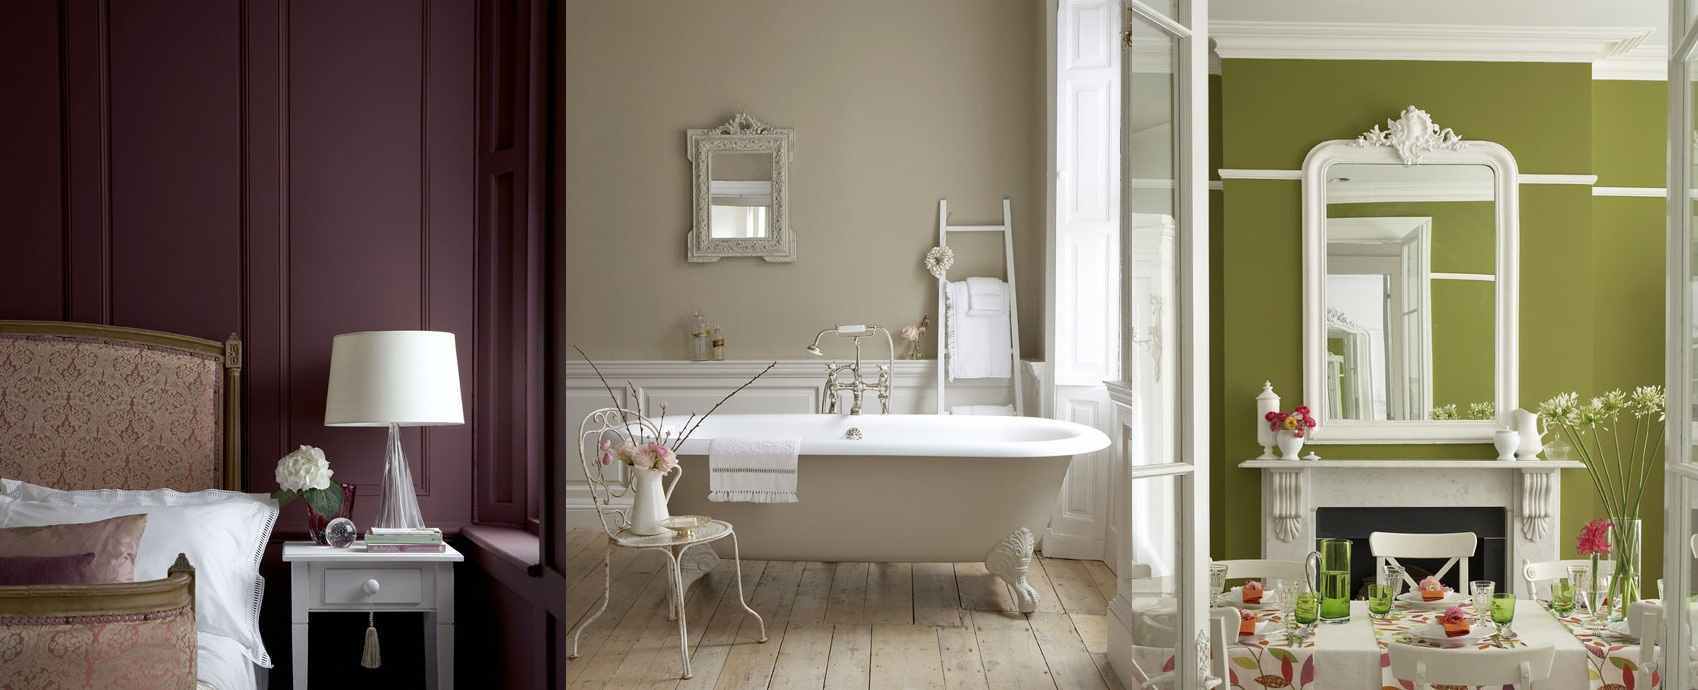 Farrow and ball paint online - Our Wide Selection Of Deigner Paint That Includes Zoffany Paint Farrow And Ball Paint And Paper Library Little Greene And Sanderson Paint Which Are All